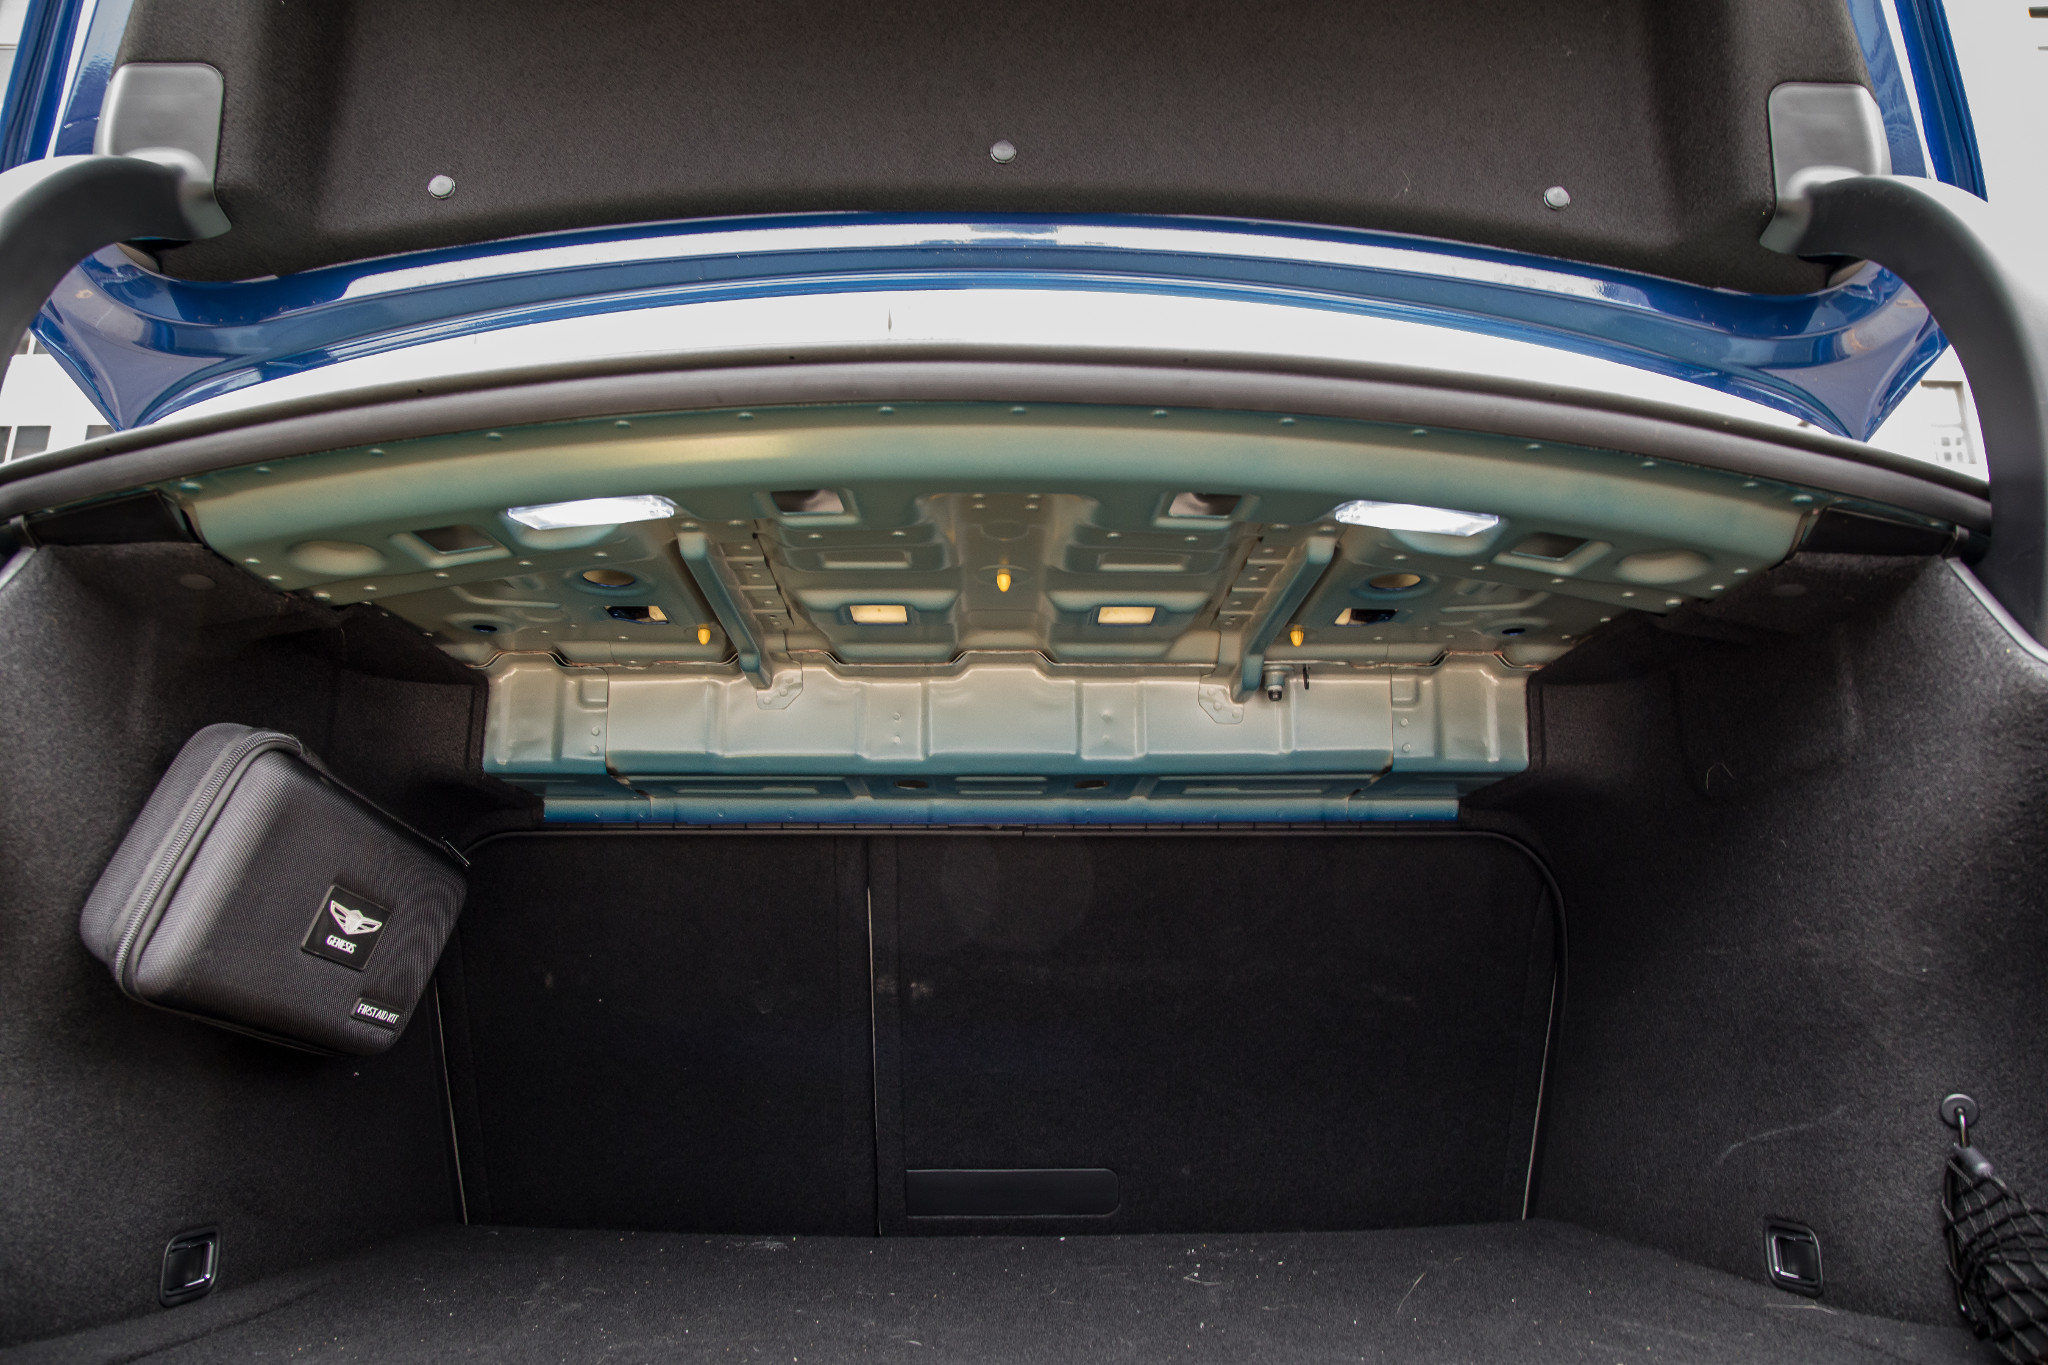 23-genesis-g70-2019-audio-system--interior--trunk.jpg